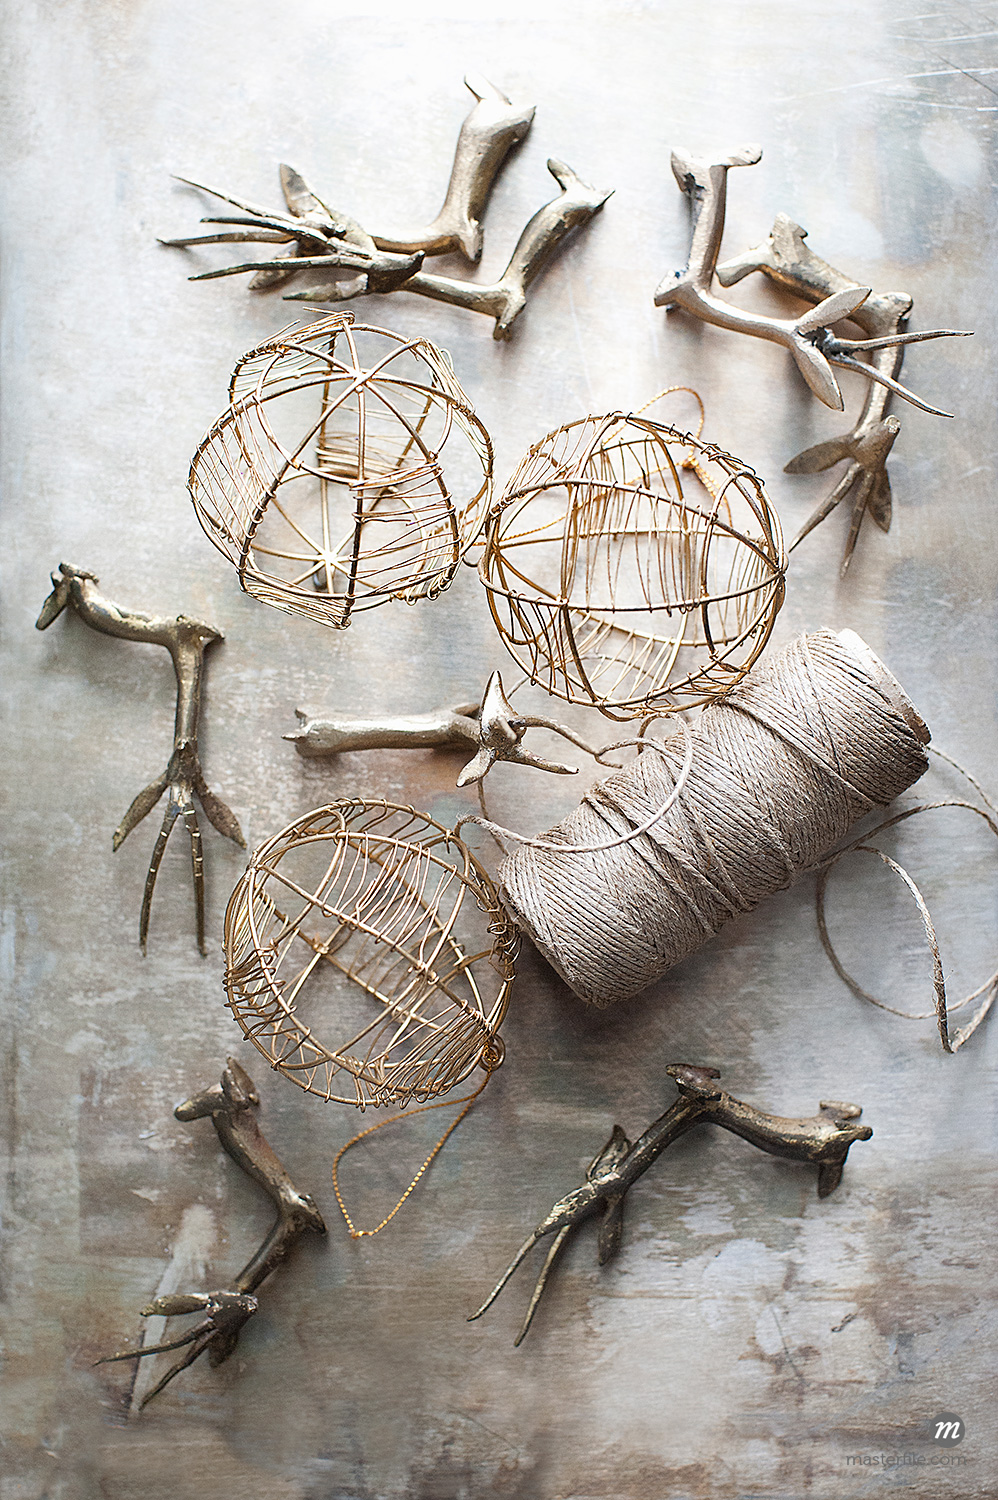 Rustic Christmas Ornaments © Cultura RM / Masterfile